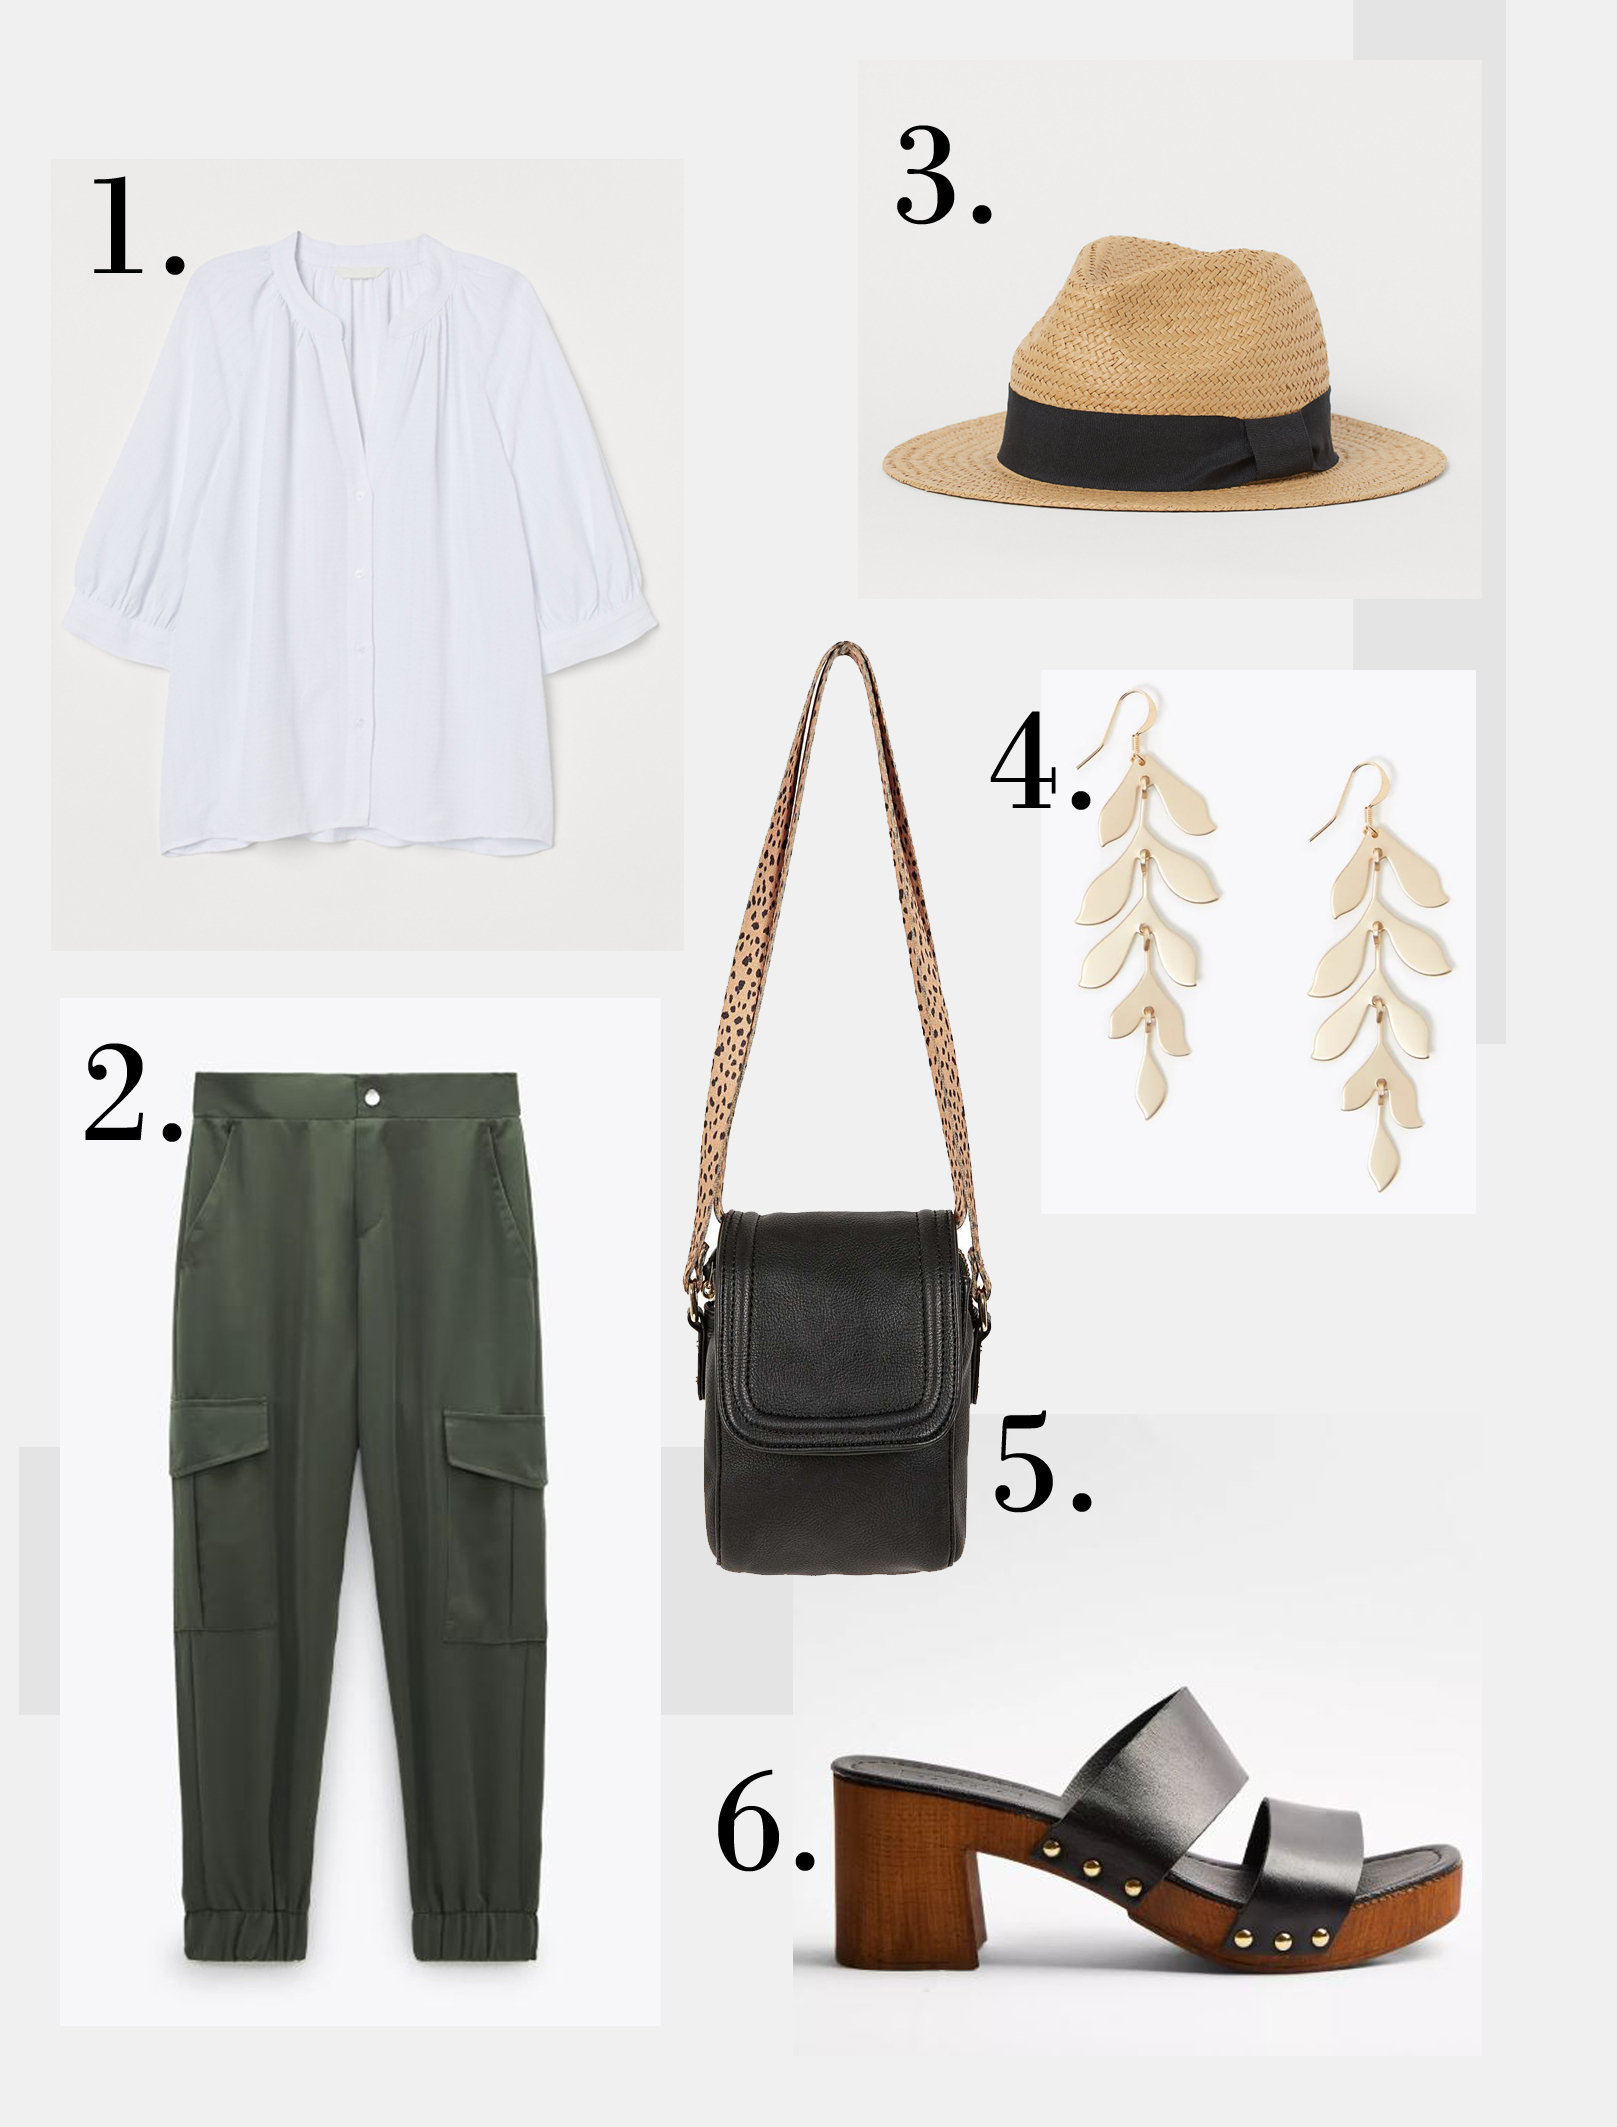 H&M Pattern Weave Blouse £12.99 Zara Cargo Trousers with Pockets £25.99 H&M Straw hat with grosgrain ribbon £9.99 M&S Cascading Leaf Drop Earrings £12.50 Oliver Bonas Nomi Cheetah Print Black Mini Crossbody bag £32 Topshop Vida Black Leather Clogs £36.79